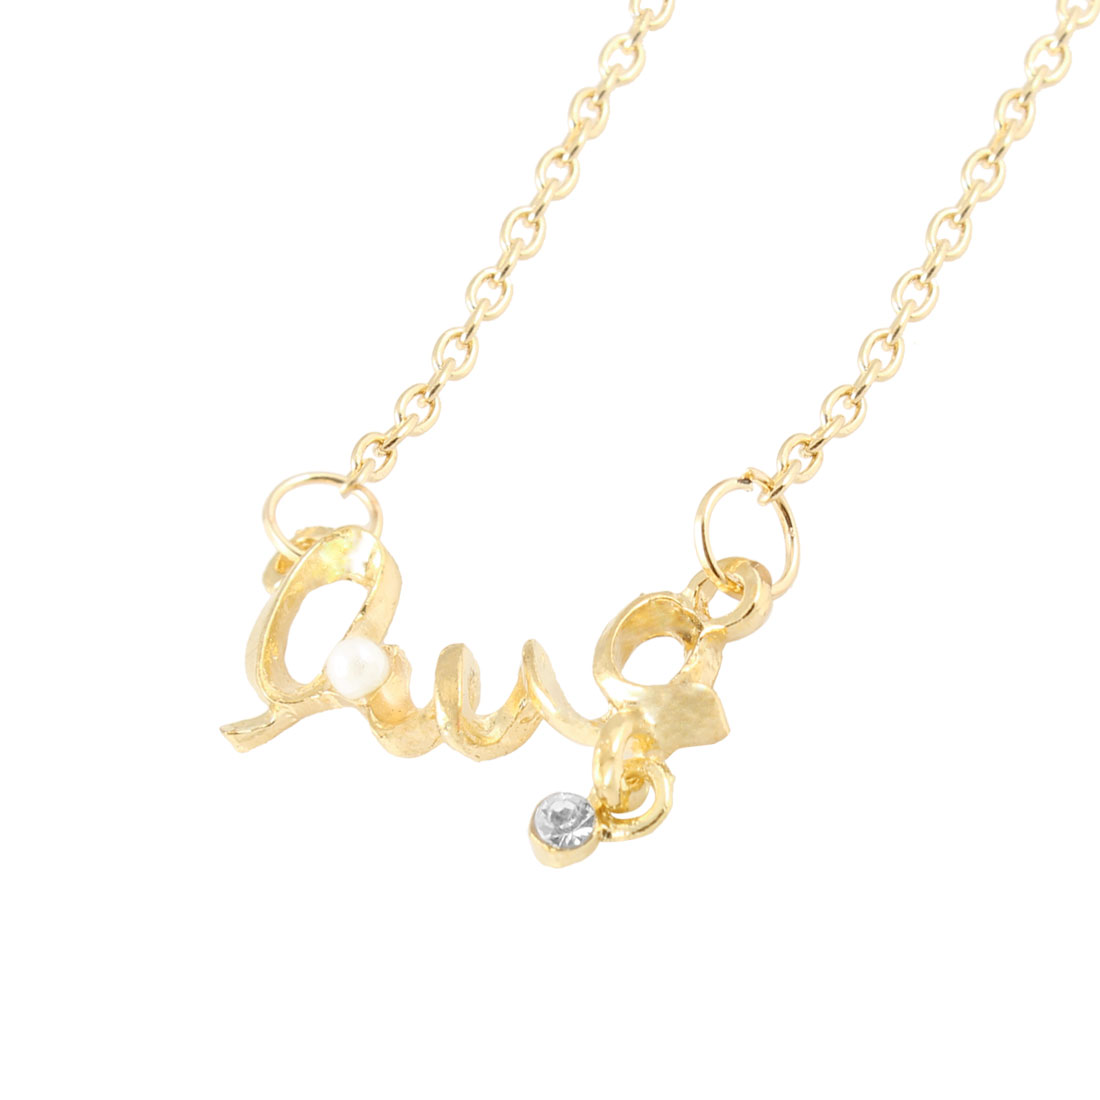 Gold Tone Letter Love Shaped Pendant Necklace Ornament for Women